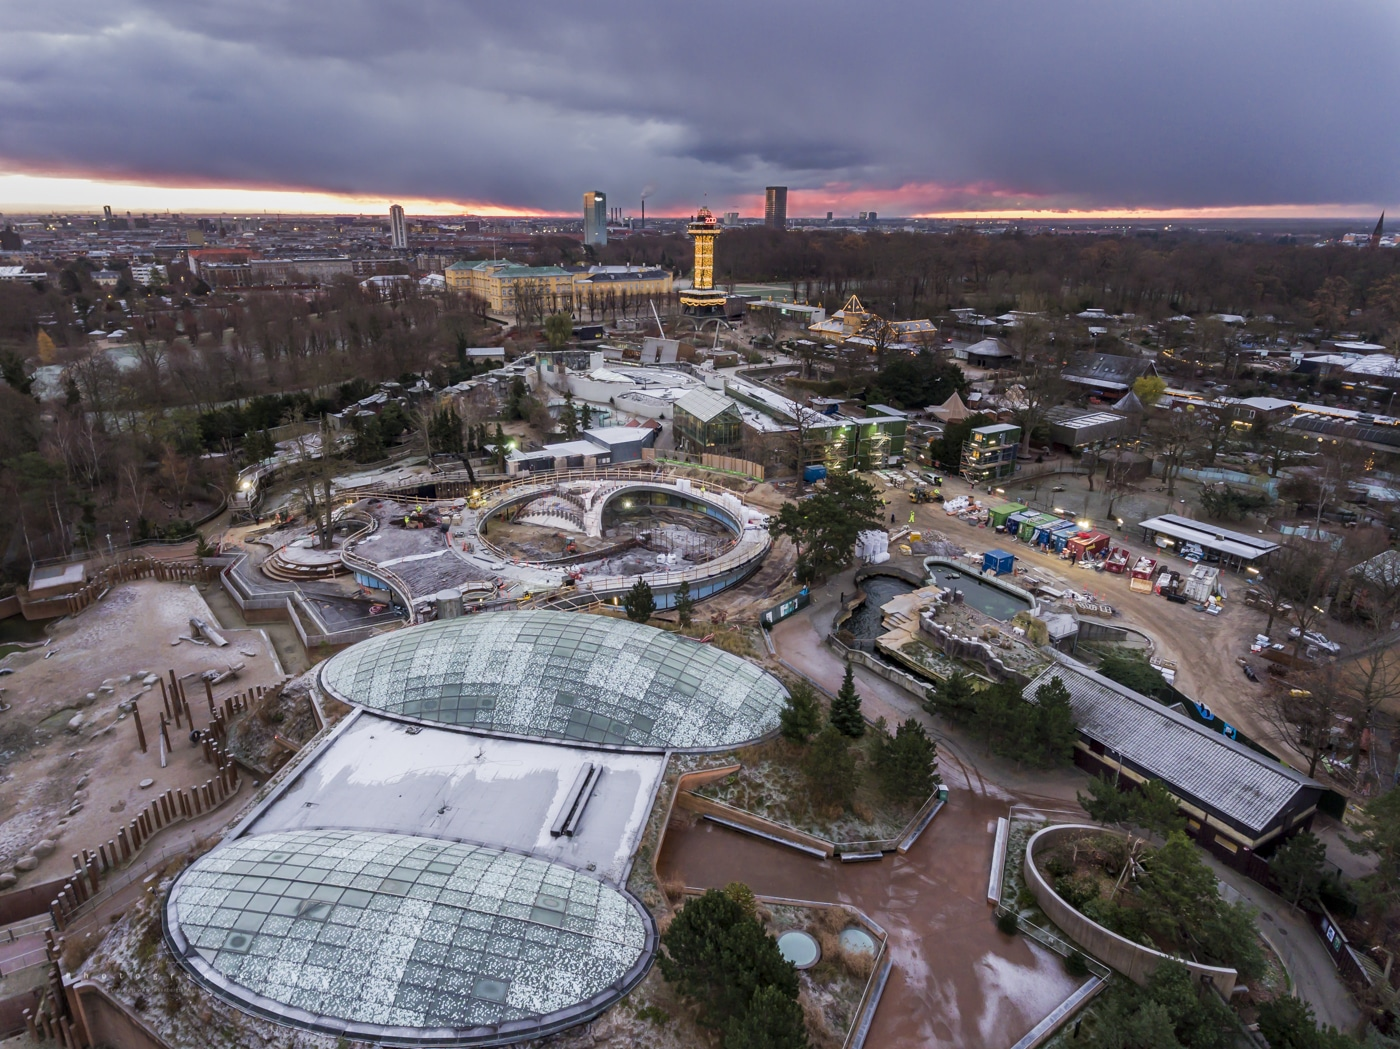 Drone photography from Copenhagen ZOO. Photo: Claus Falkenberg Thomsen